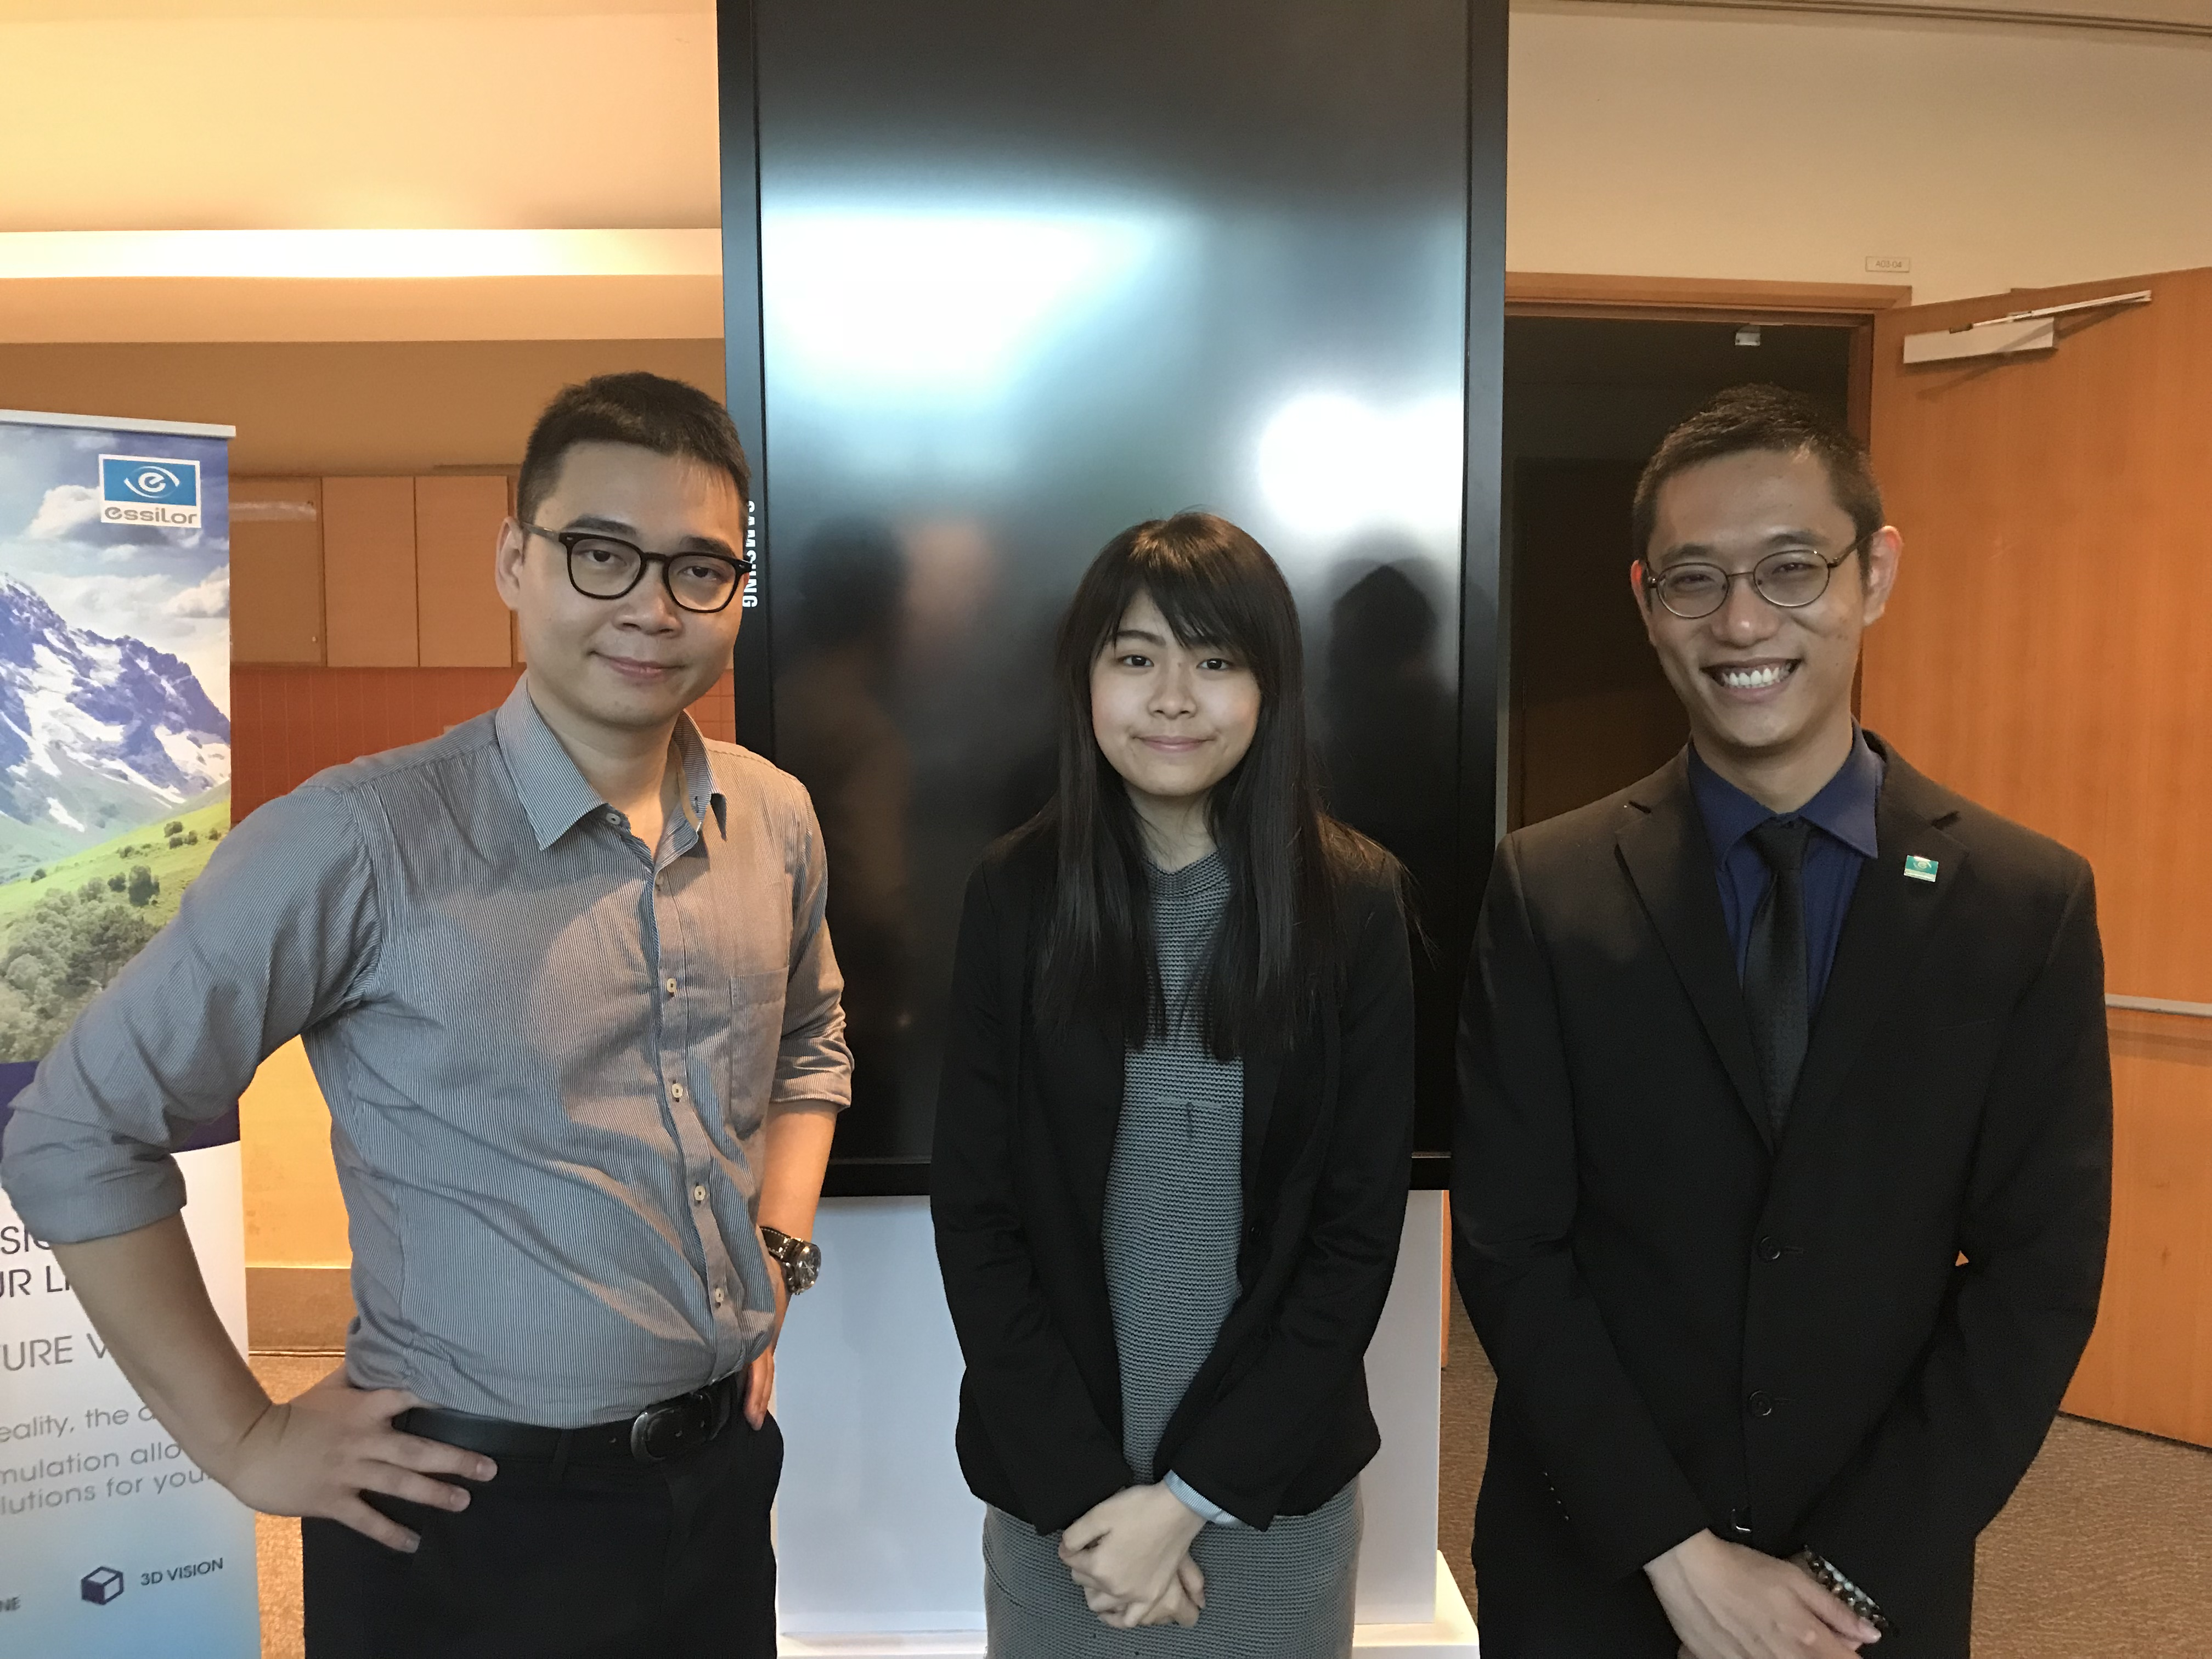 International Eye Cataract Retina Centre optometrist Ms Goh Jiah Ying (centre) with fellow eye care professionals Mr Soh Wei Zhi (L) and Mr Jayson Lim (R) at the 3rd Annual Singapore Optometric Association Conference in ITE College East held on 27-28 September 2017.